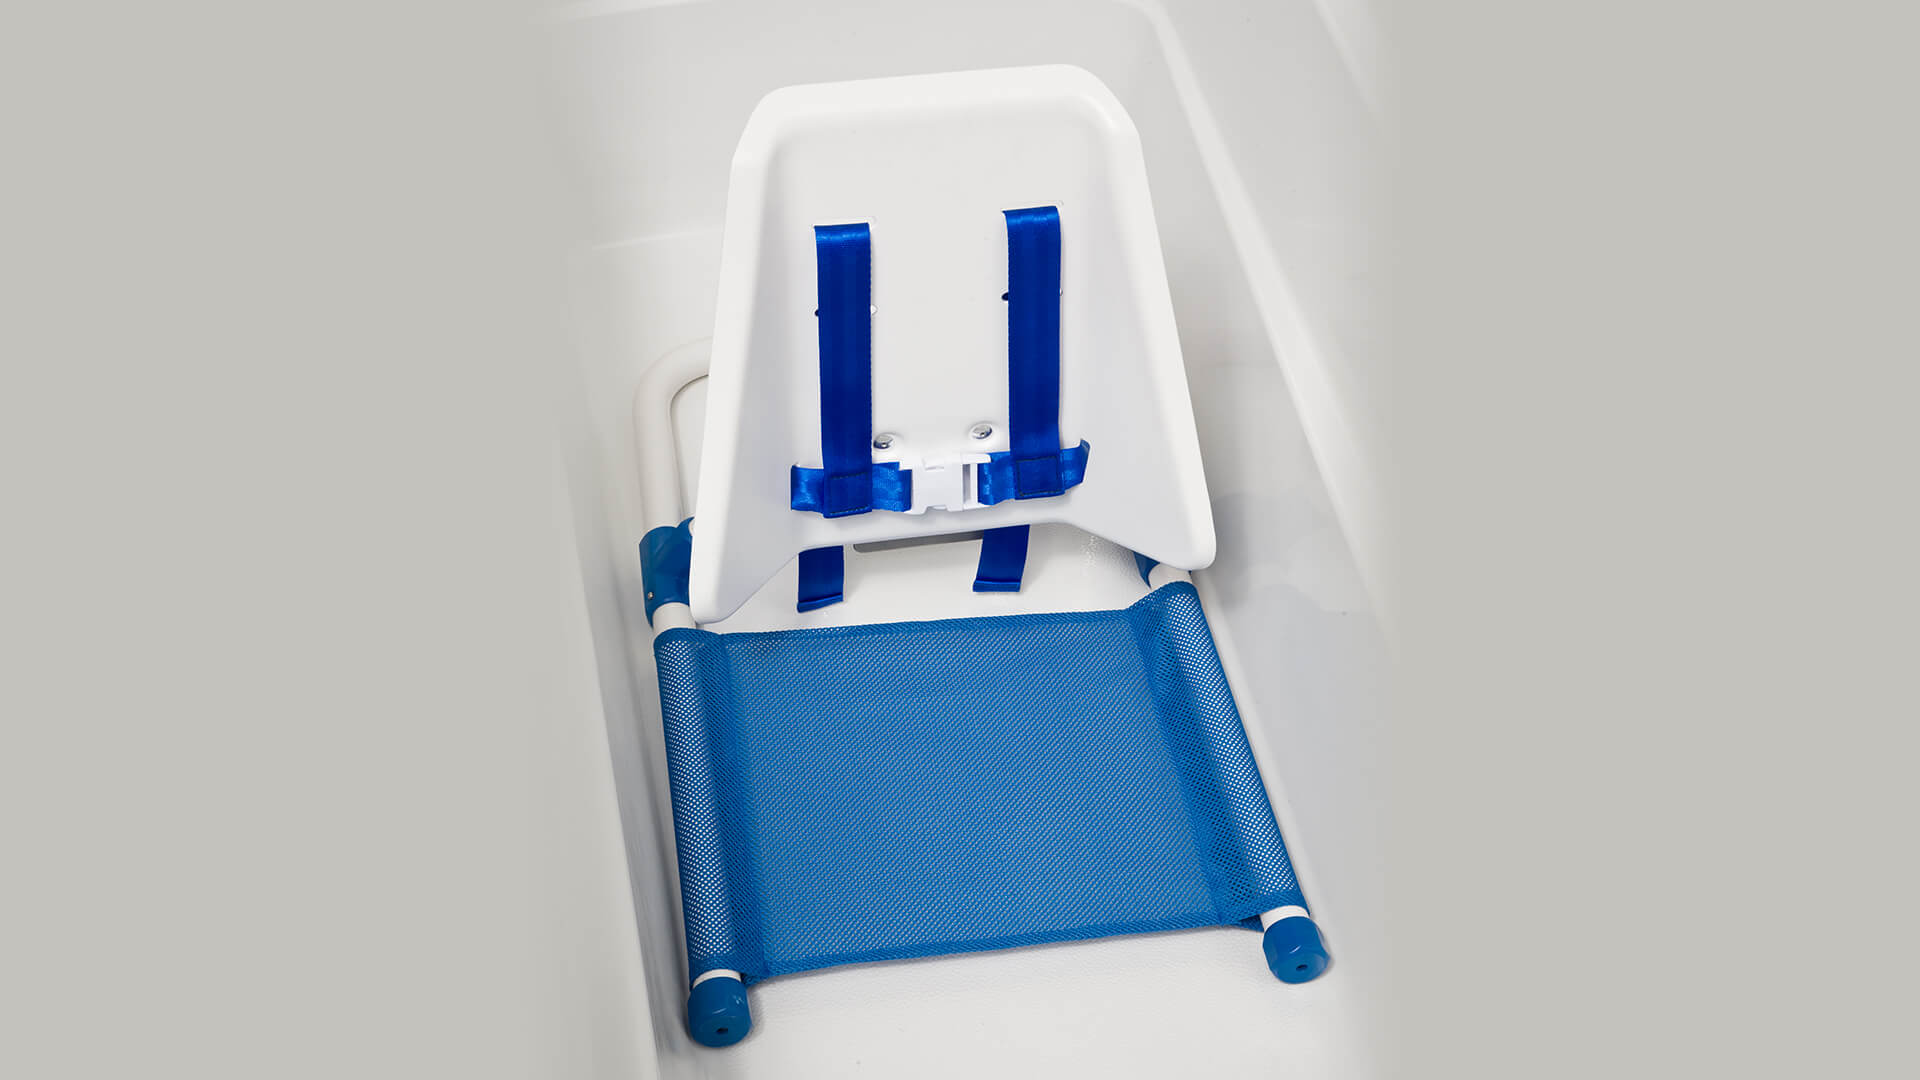 Contour Wrap Around Bath Support Inspired By Drive